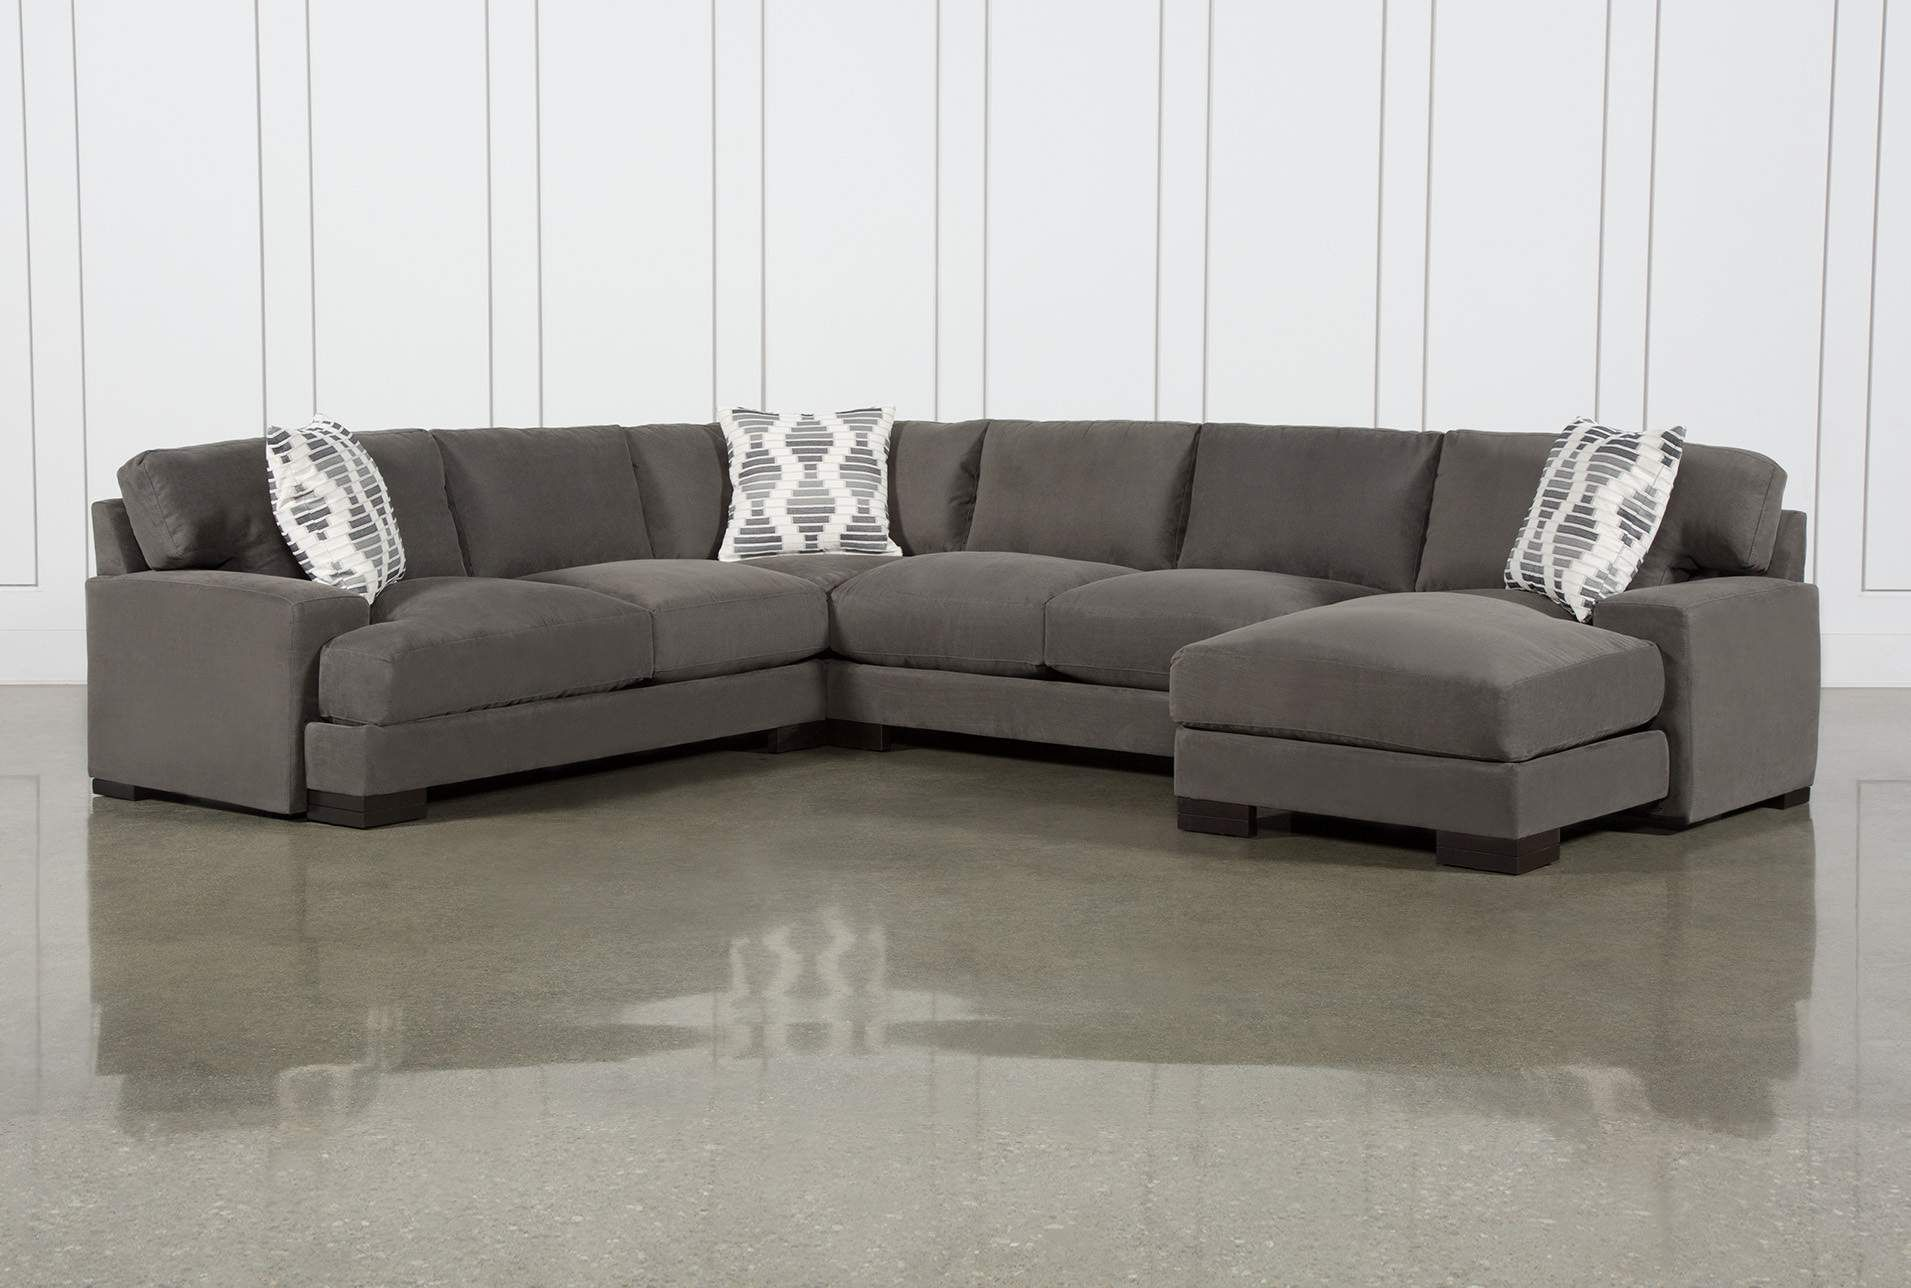 Remarkable Aidan Ii 4 Piece Sectional With Right Arm Facing Chaise Gmtry Best Dining Table And Chair Ideas Images Gmtryco